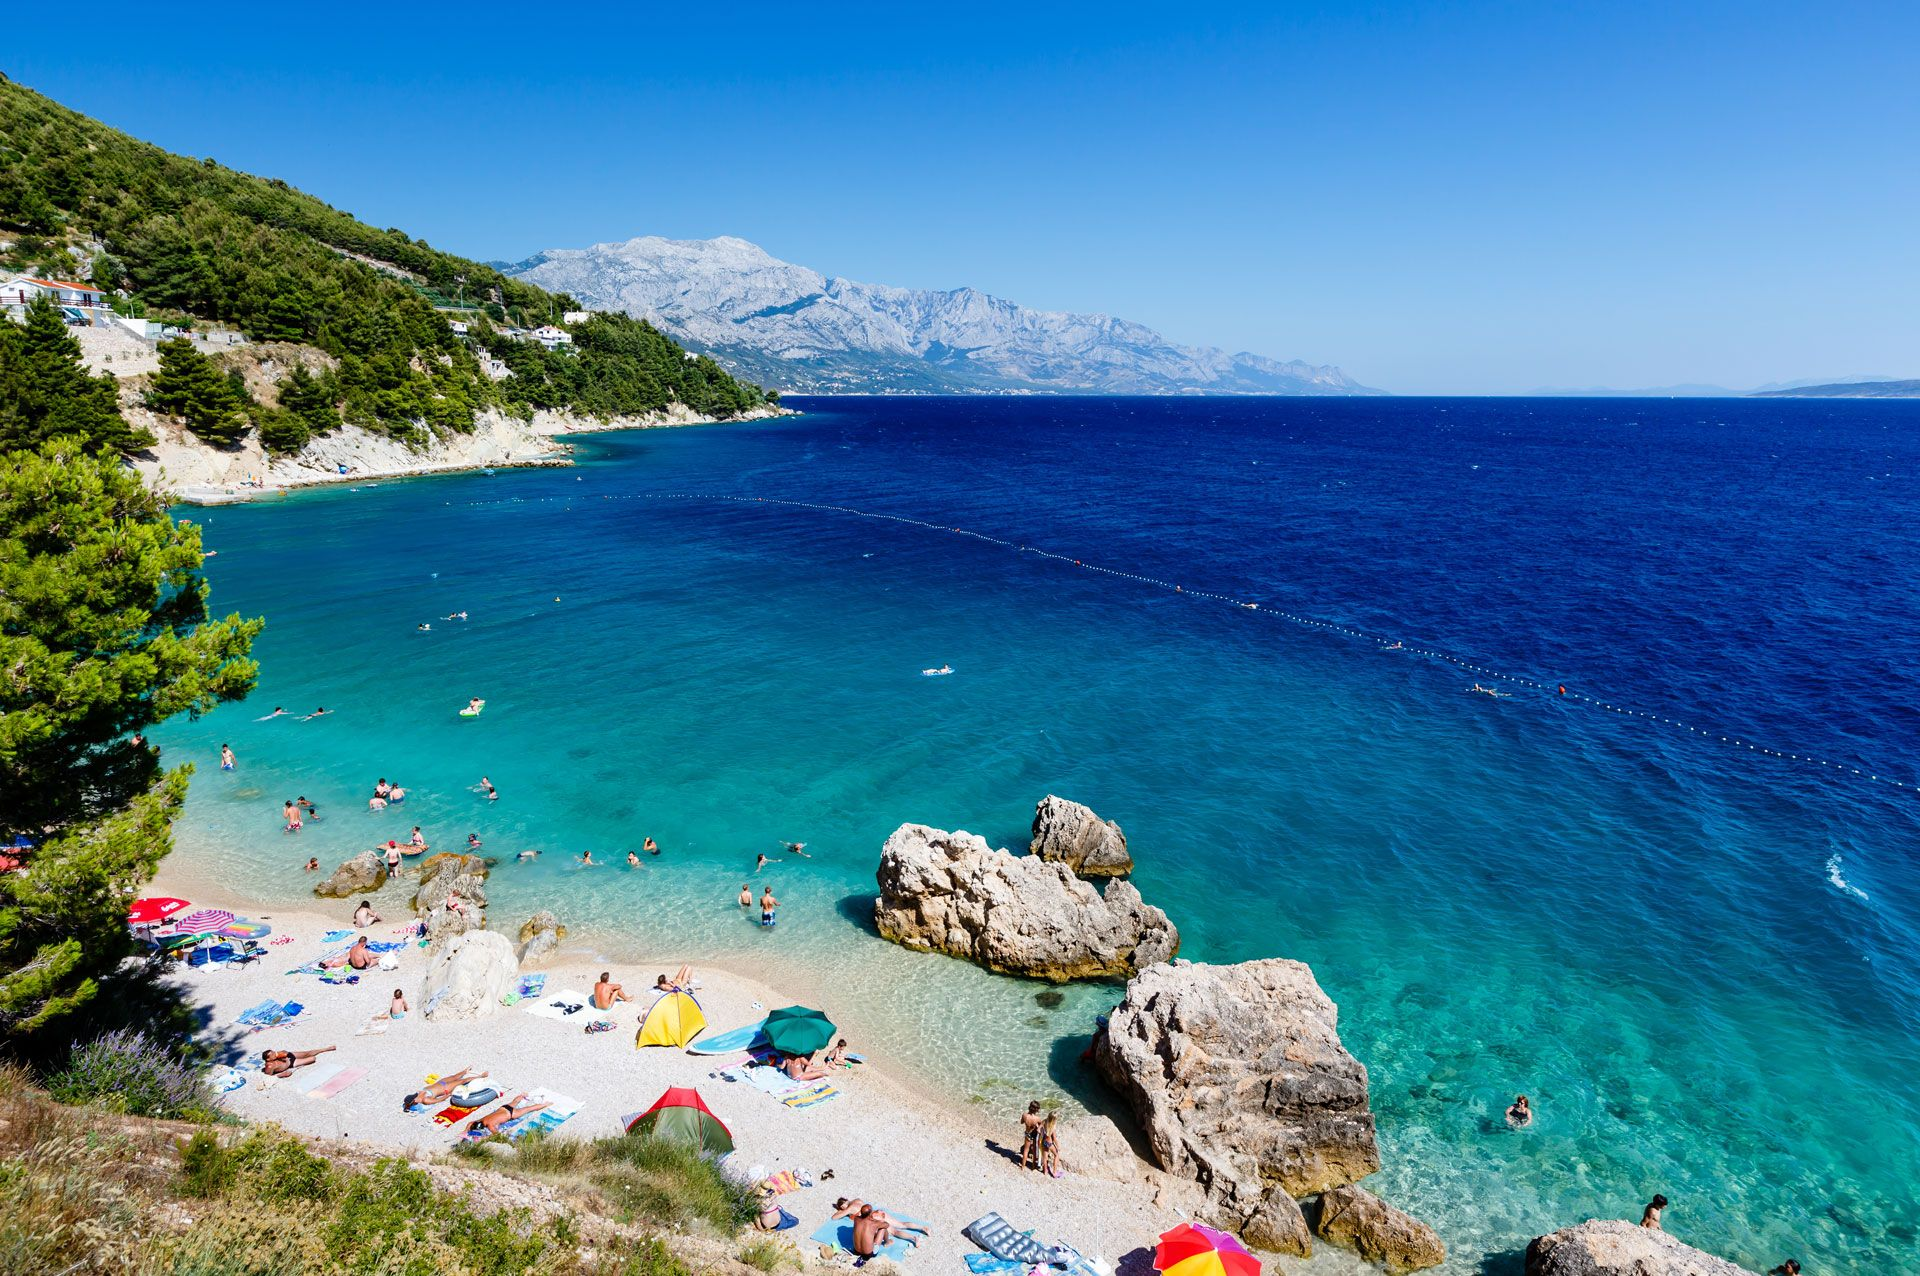 Croatia's dramatic Dalmatian Coast is home to thousands of